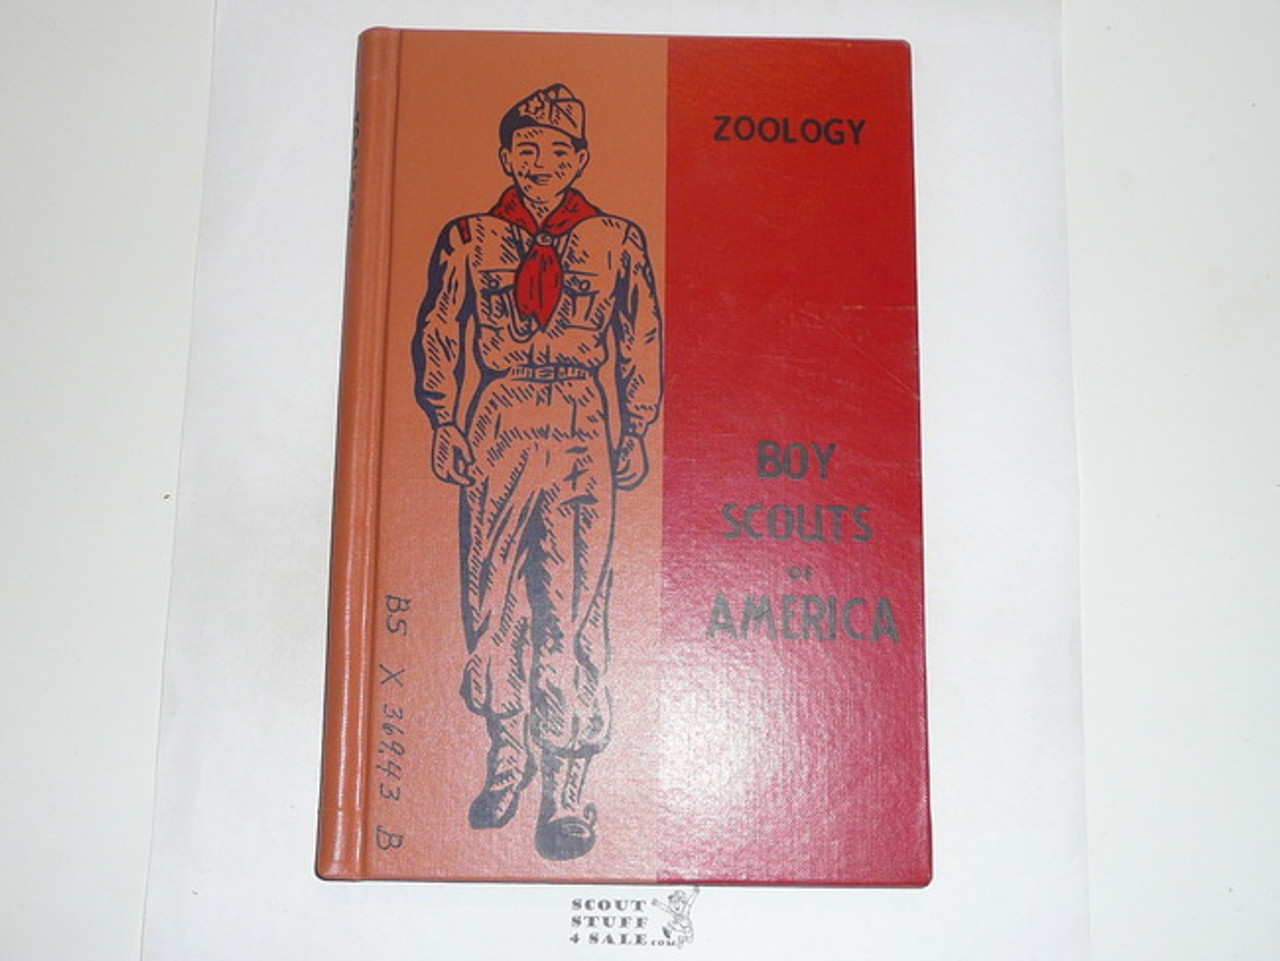 Zoology Library Bound Merit Badge Pamphlet, Type 6, Picture Top Red Bottom Cover, 5-62 Printing